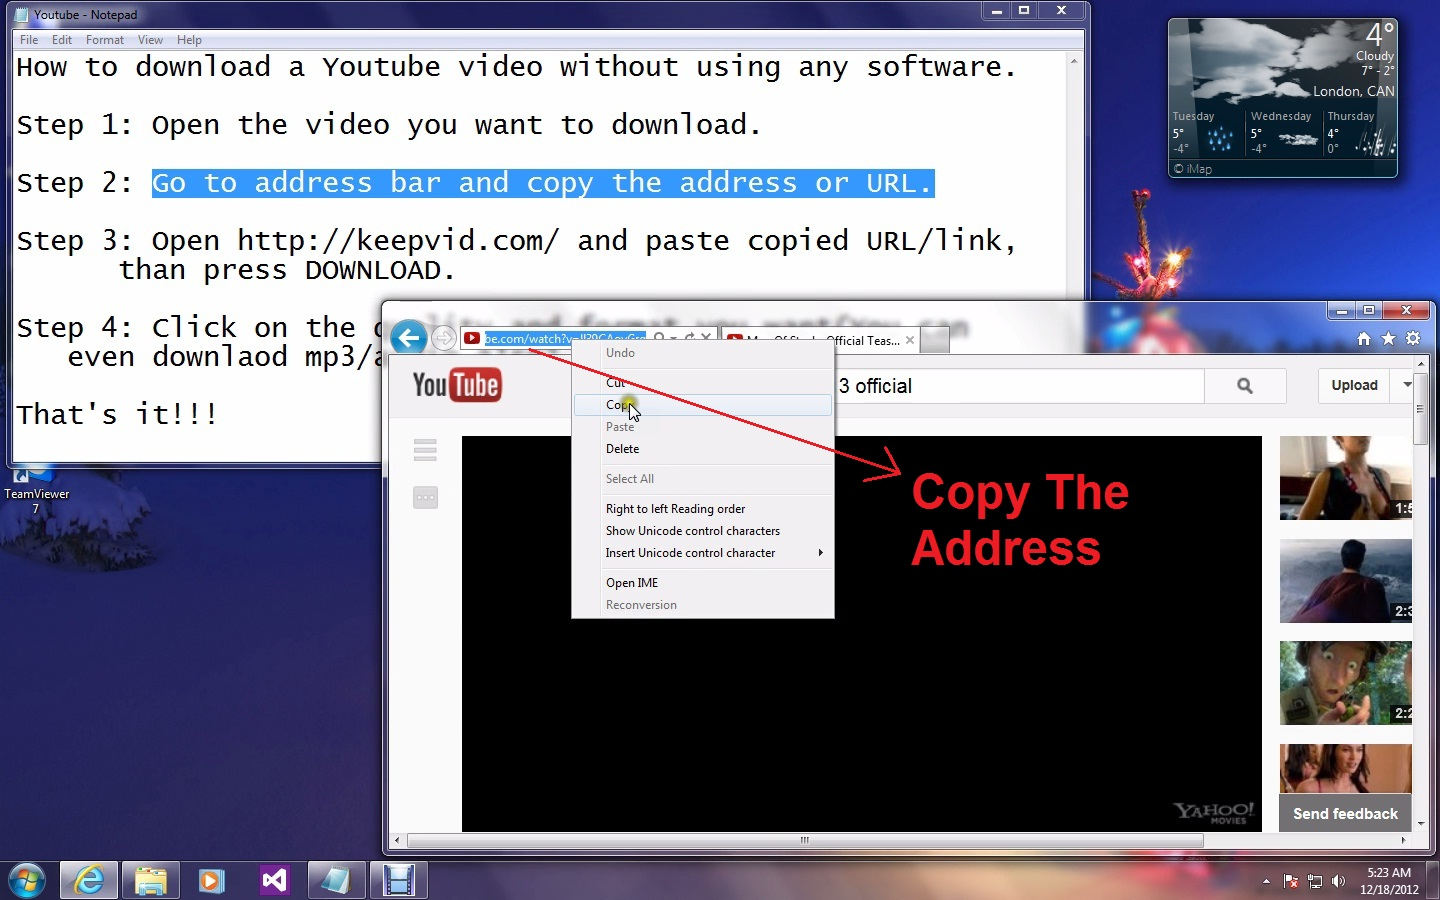 How to download youtube video no software required techno gadget step 3 open httpkeepvid and paste the copied urllink than press downloadnote you may need to download java software if you dont have ccuart Image collections